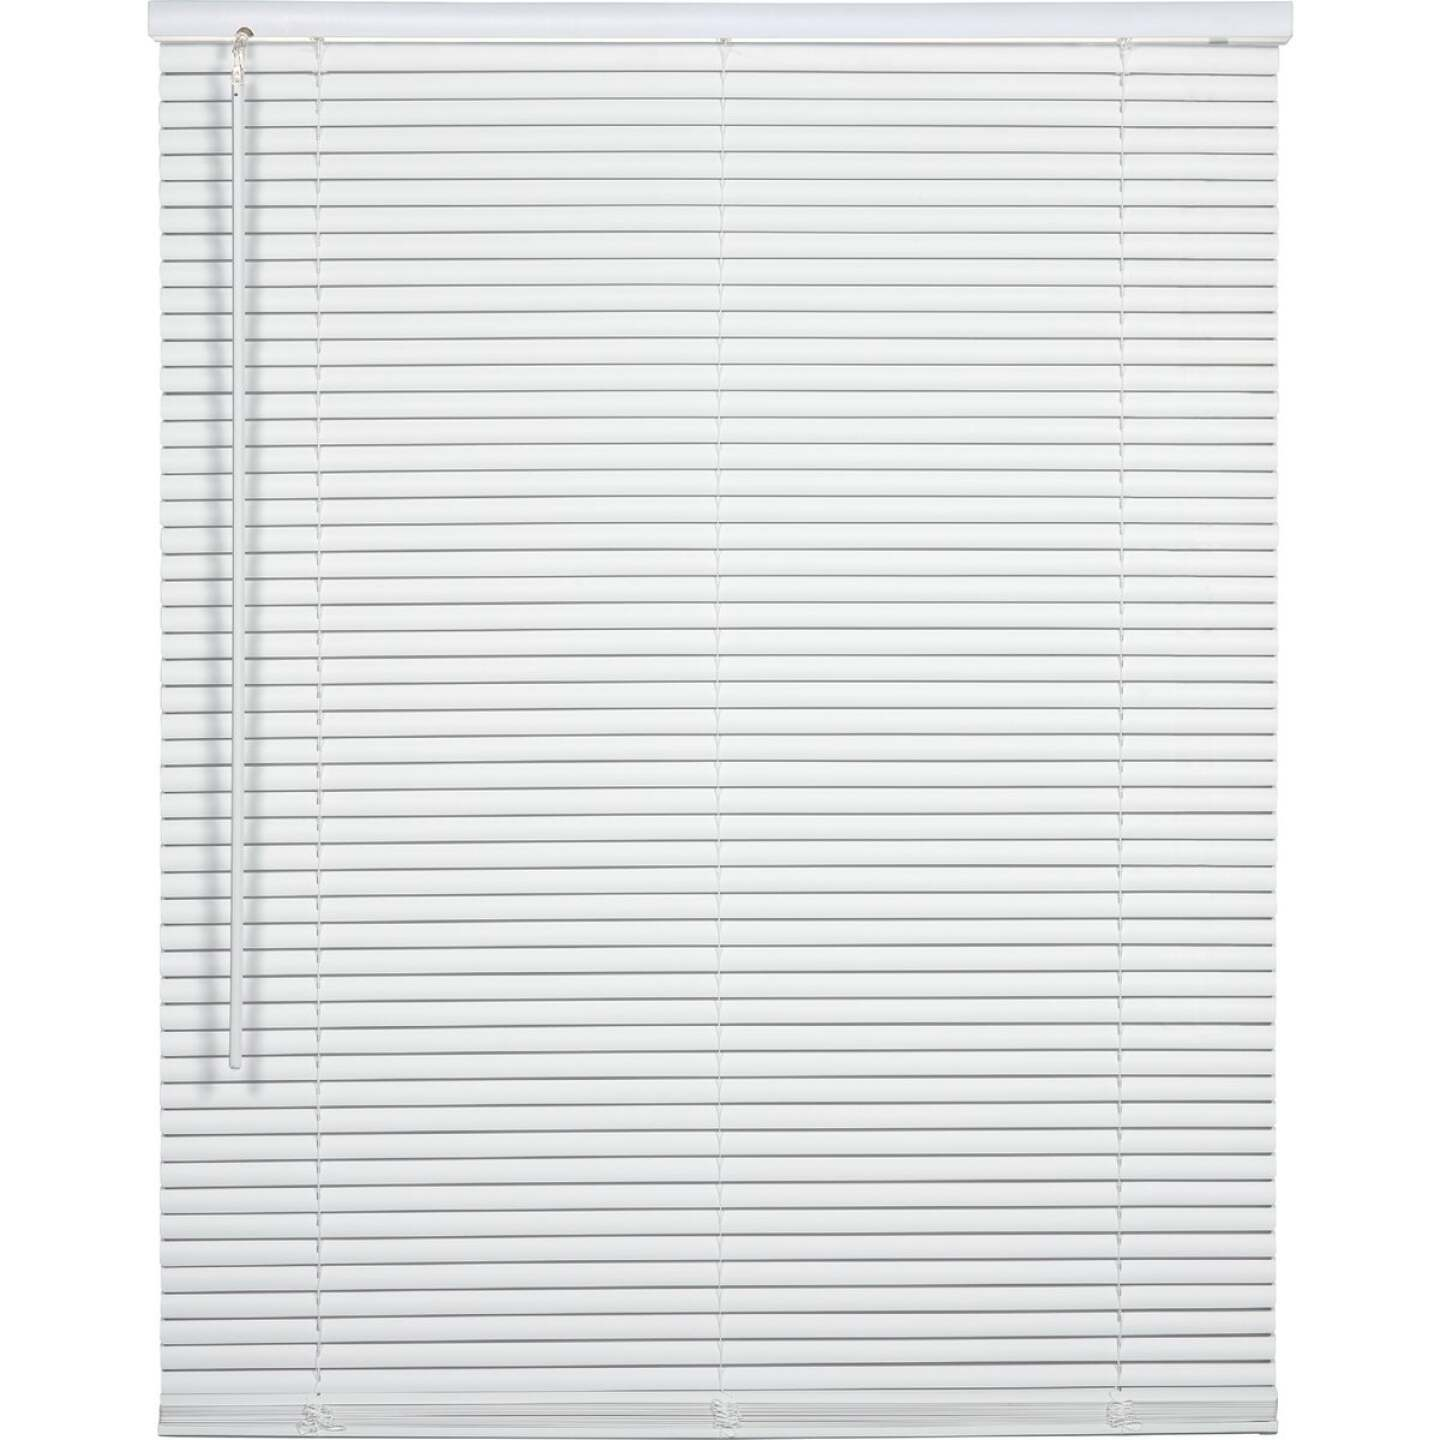 Home Impressions 45 In. x 64 In. x 1 In. White Vinyl Light Filtering Cordless Mini Blind Image 1